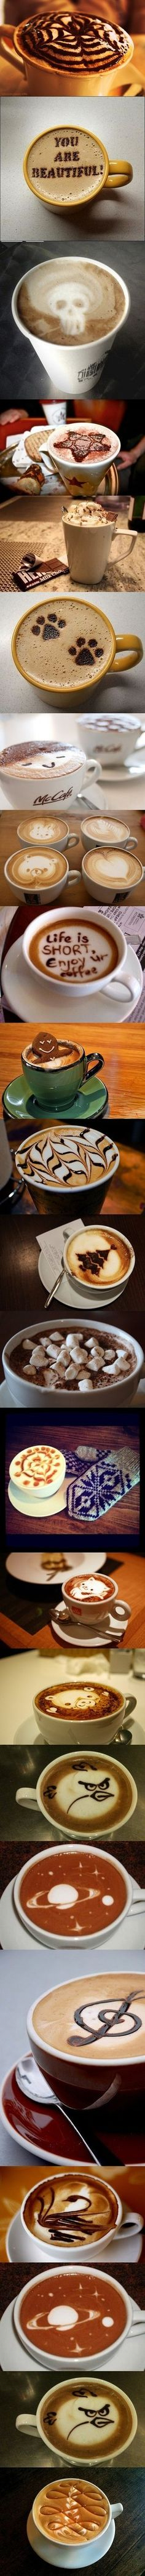 #Coffee collection // pinned by @welkerpatrick